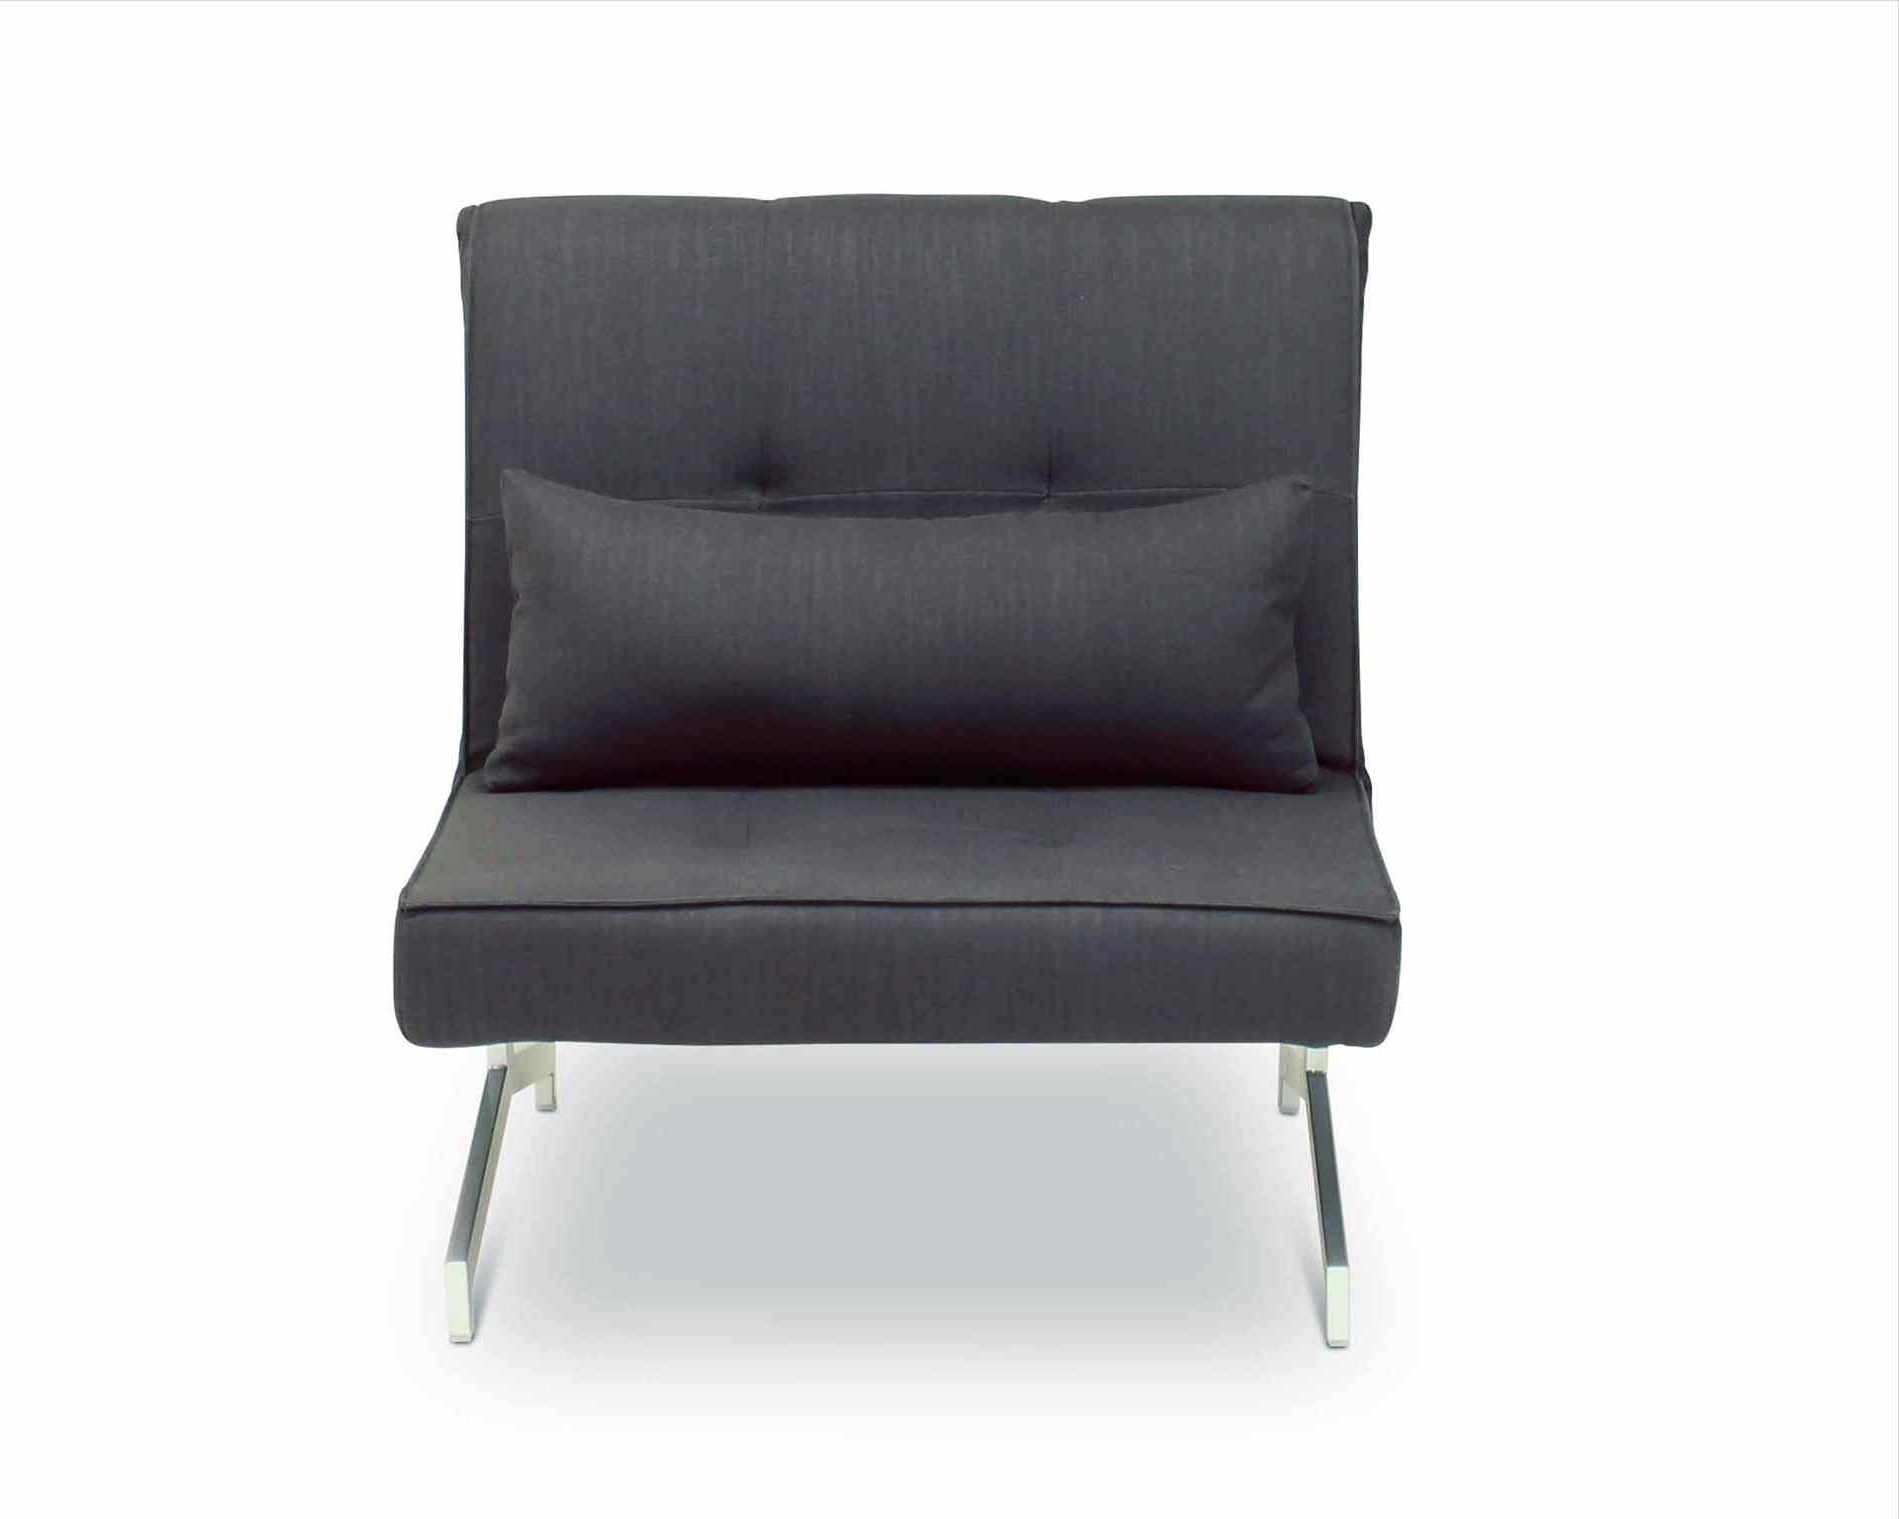 Big Sofa Chairs Regarding Most Current Armchair : Sofa Chair Cheap Big Lots Furniture Sofa Chair Bed (View 7 of 20)